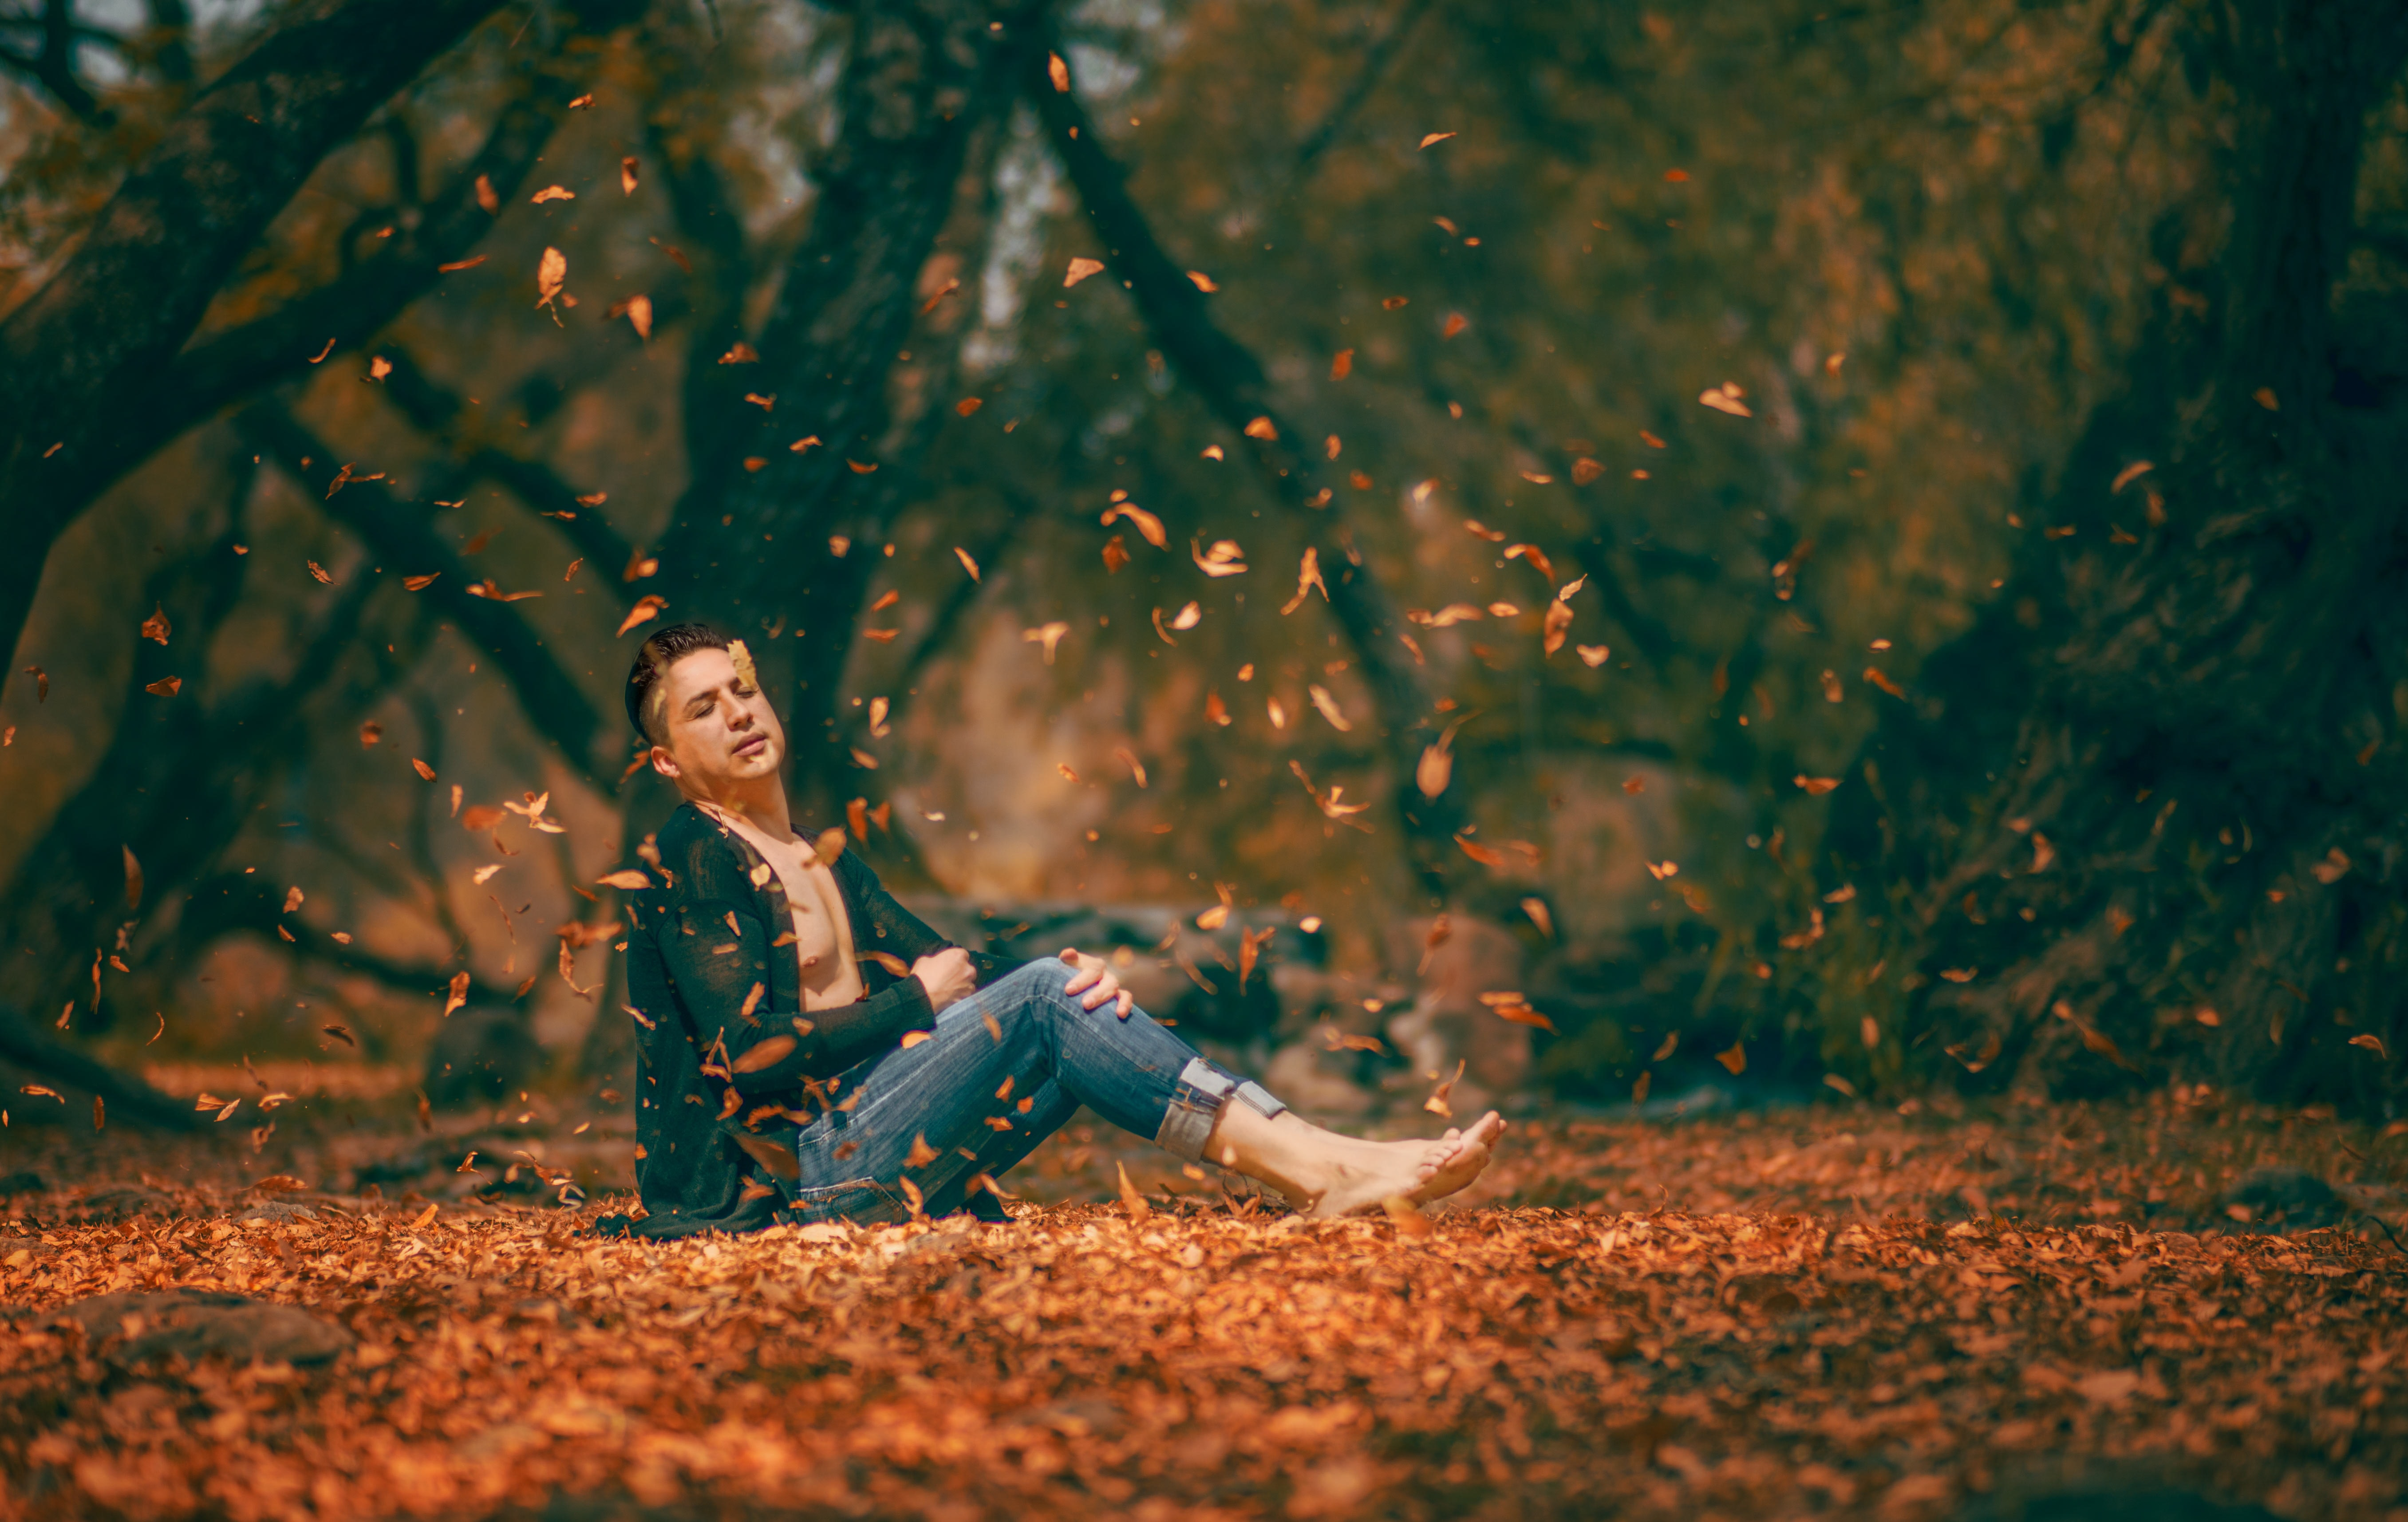 Shirtless man in a cardigan sits among falling fall leaves